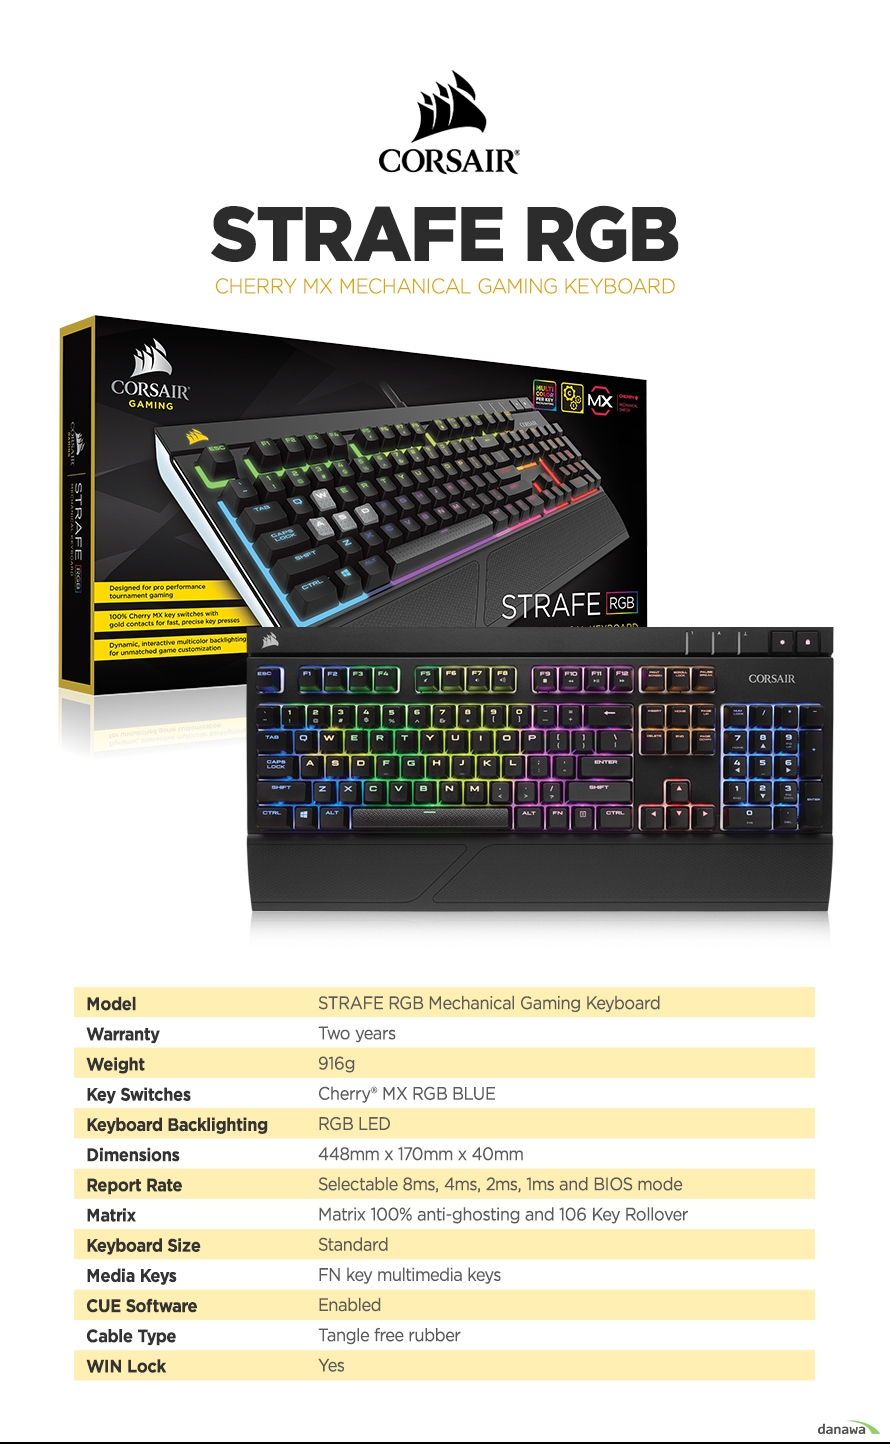 제품 사양Model	STRAFE RGB Mechanical Gaming KeyboardWarranty	Two yearsWeight	916gKey Switches	Cherry® MX RGB BlueKeyboard Backlighting	RGB LEDDimensions	448mm x 170mm x 40mmReport Rate	Selectable 8ms, 4ms, 2ms, 1ms and BIOS modeMatrix	Matrix 100% anti-ghosting and 106 Key RolloverKeyboard Size	StandardMedia Keys	FN key multimedia keysCUE Software	EnabledCable Type	Tangle free rubberWIN Lock	Yes